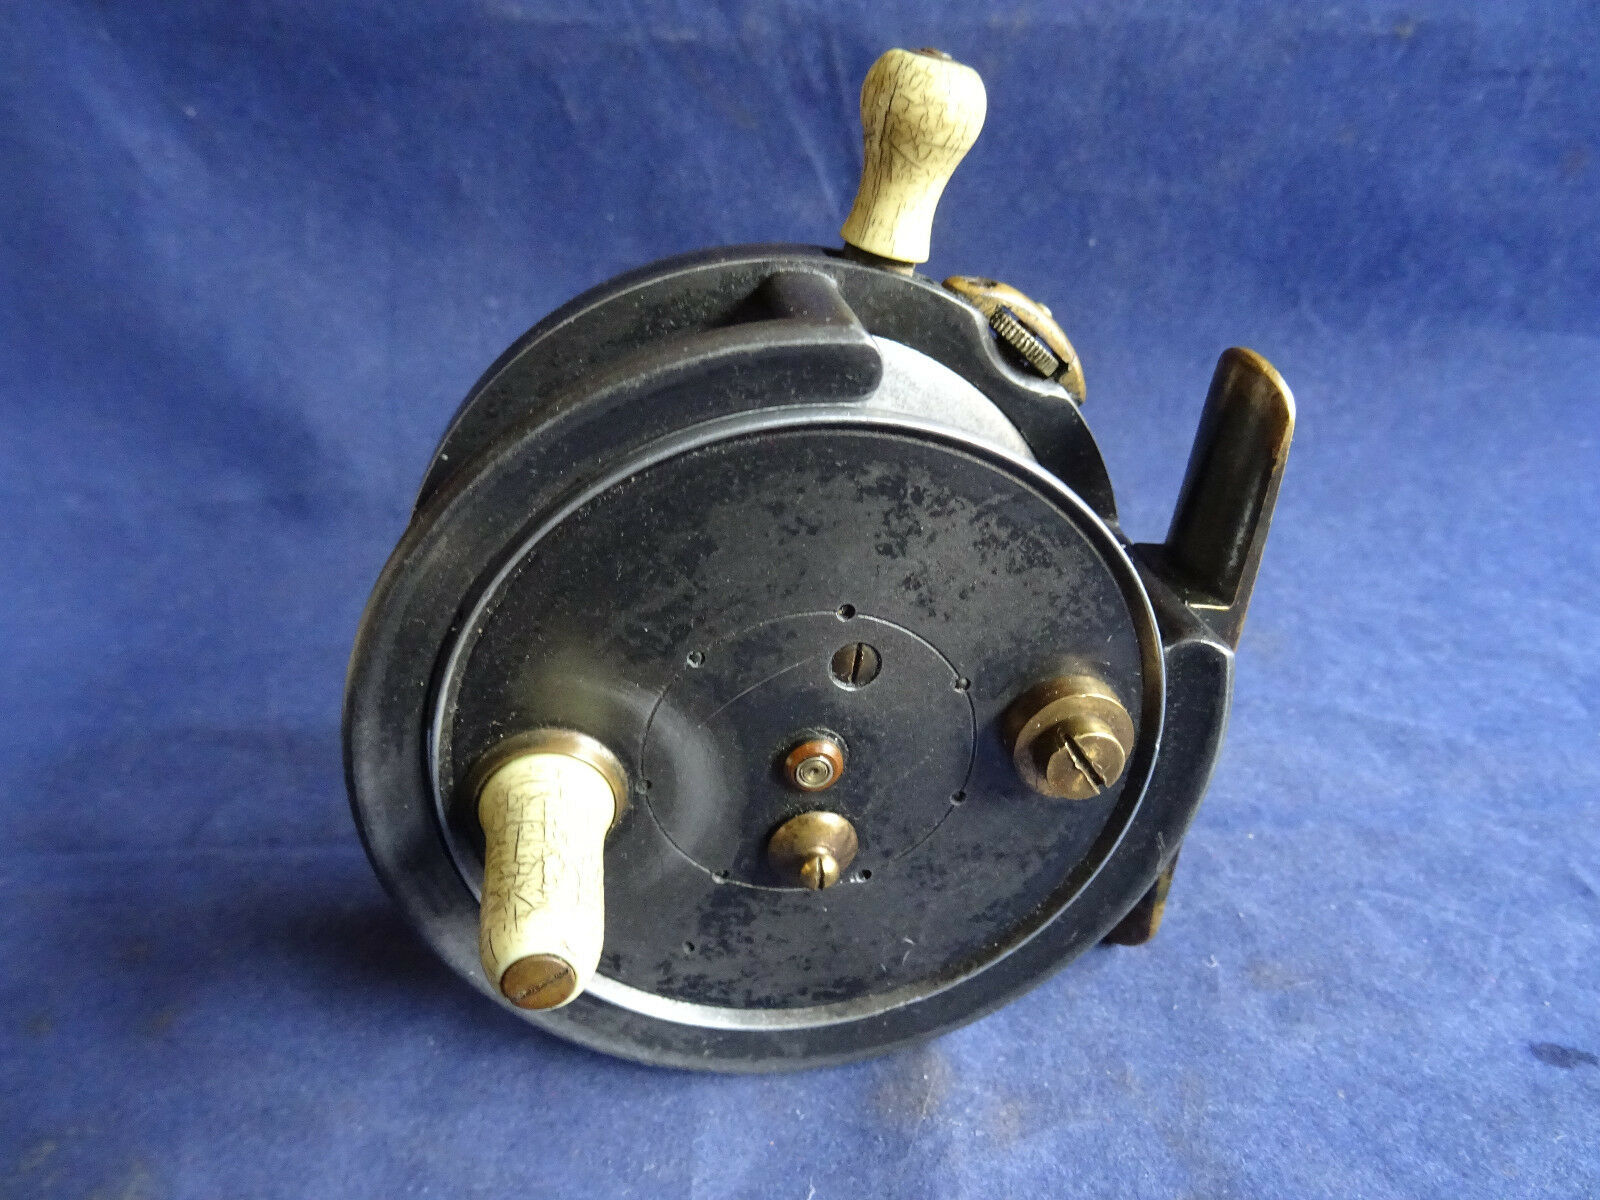 A RARE VINTAGE OGDON SMITH  SPINAX 3 1 2  SPINNING CENTREPIN REEL  hot sale online